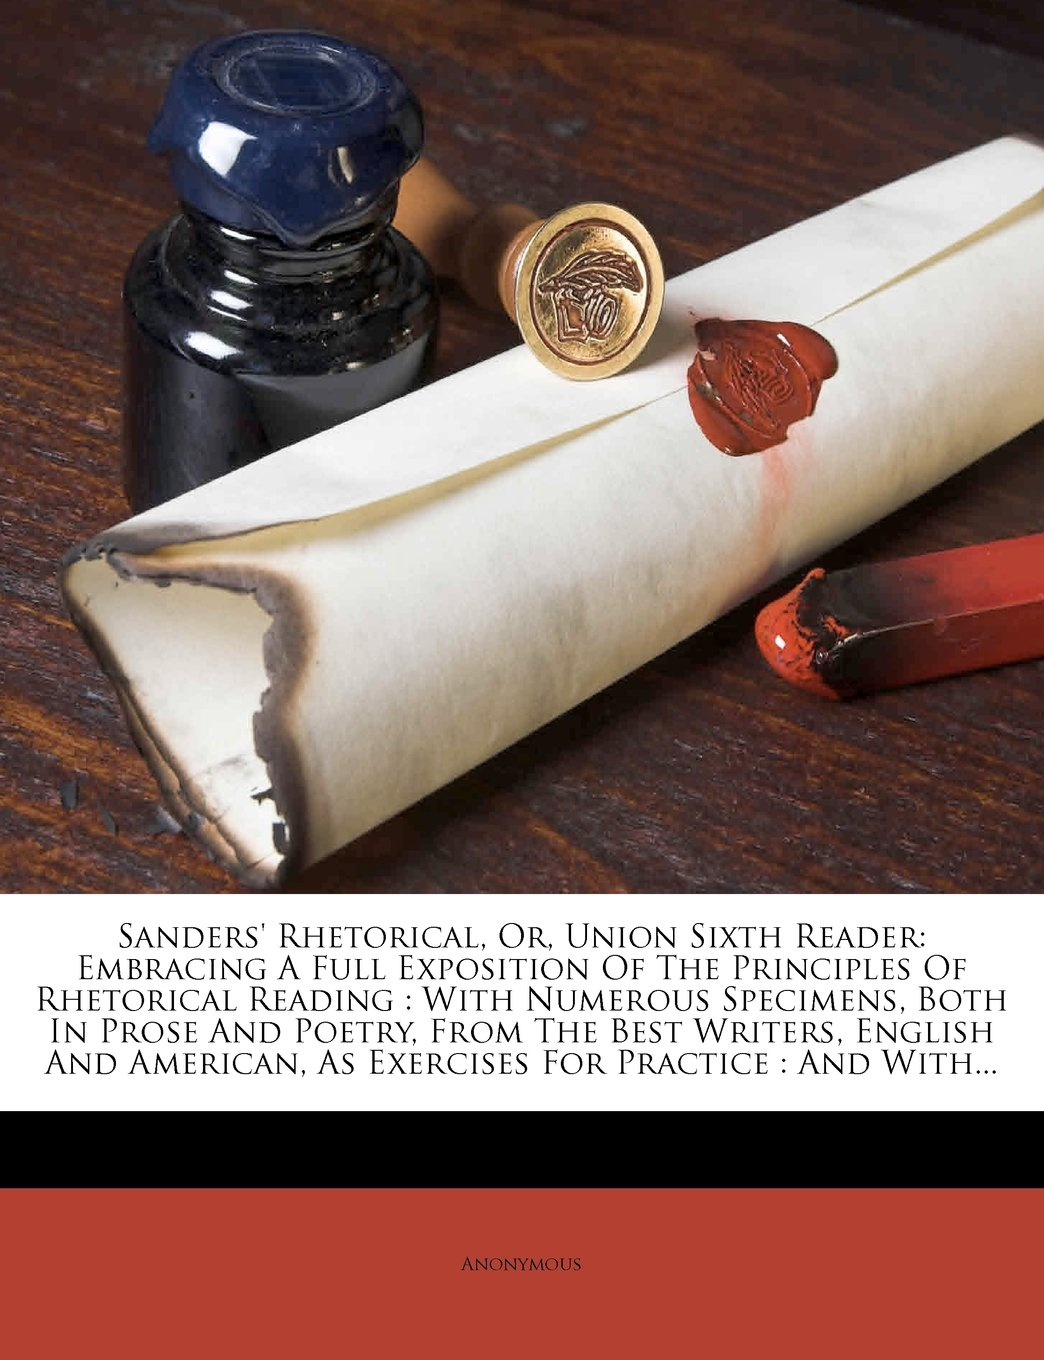 Read Online Sanders' Rhetorical, Or, Union Sixth Reader: Embracing A Full Exposition Of The Principles Of Rhetorical Reading : With Numerous Specimens, Both In ... As Exercises For Practice : And With... pdf